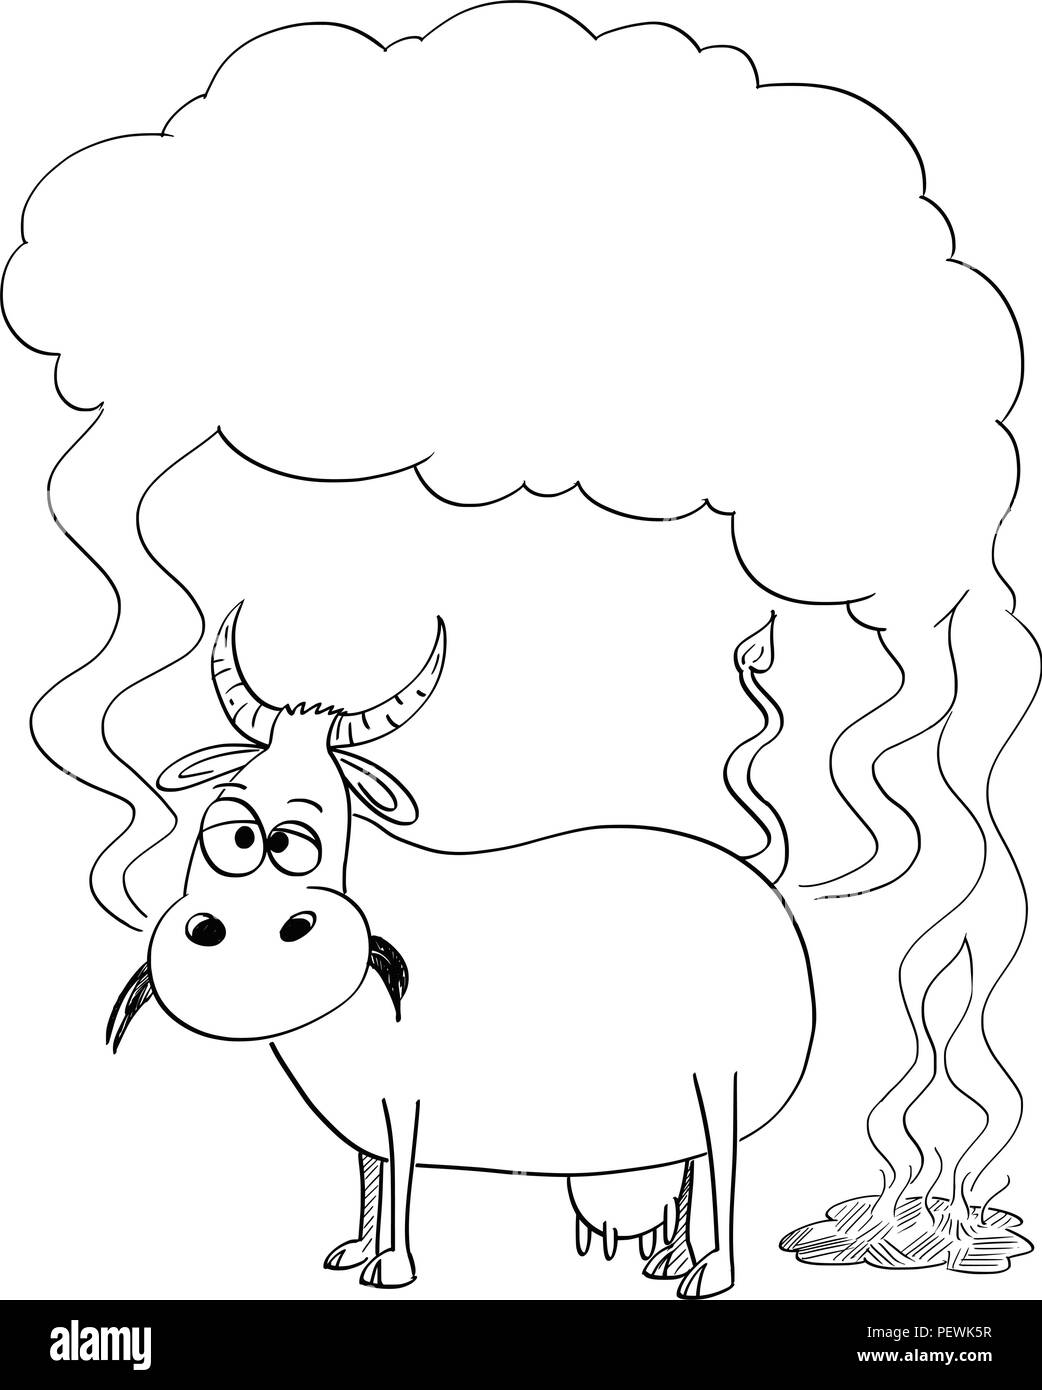 Vector Black and White Drawing or Illustration of Cow Producing Methane - Stock Image